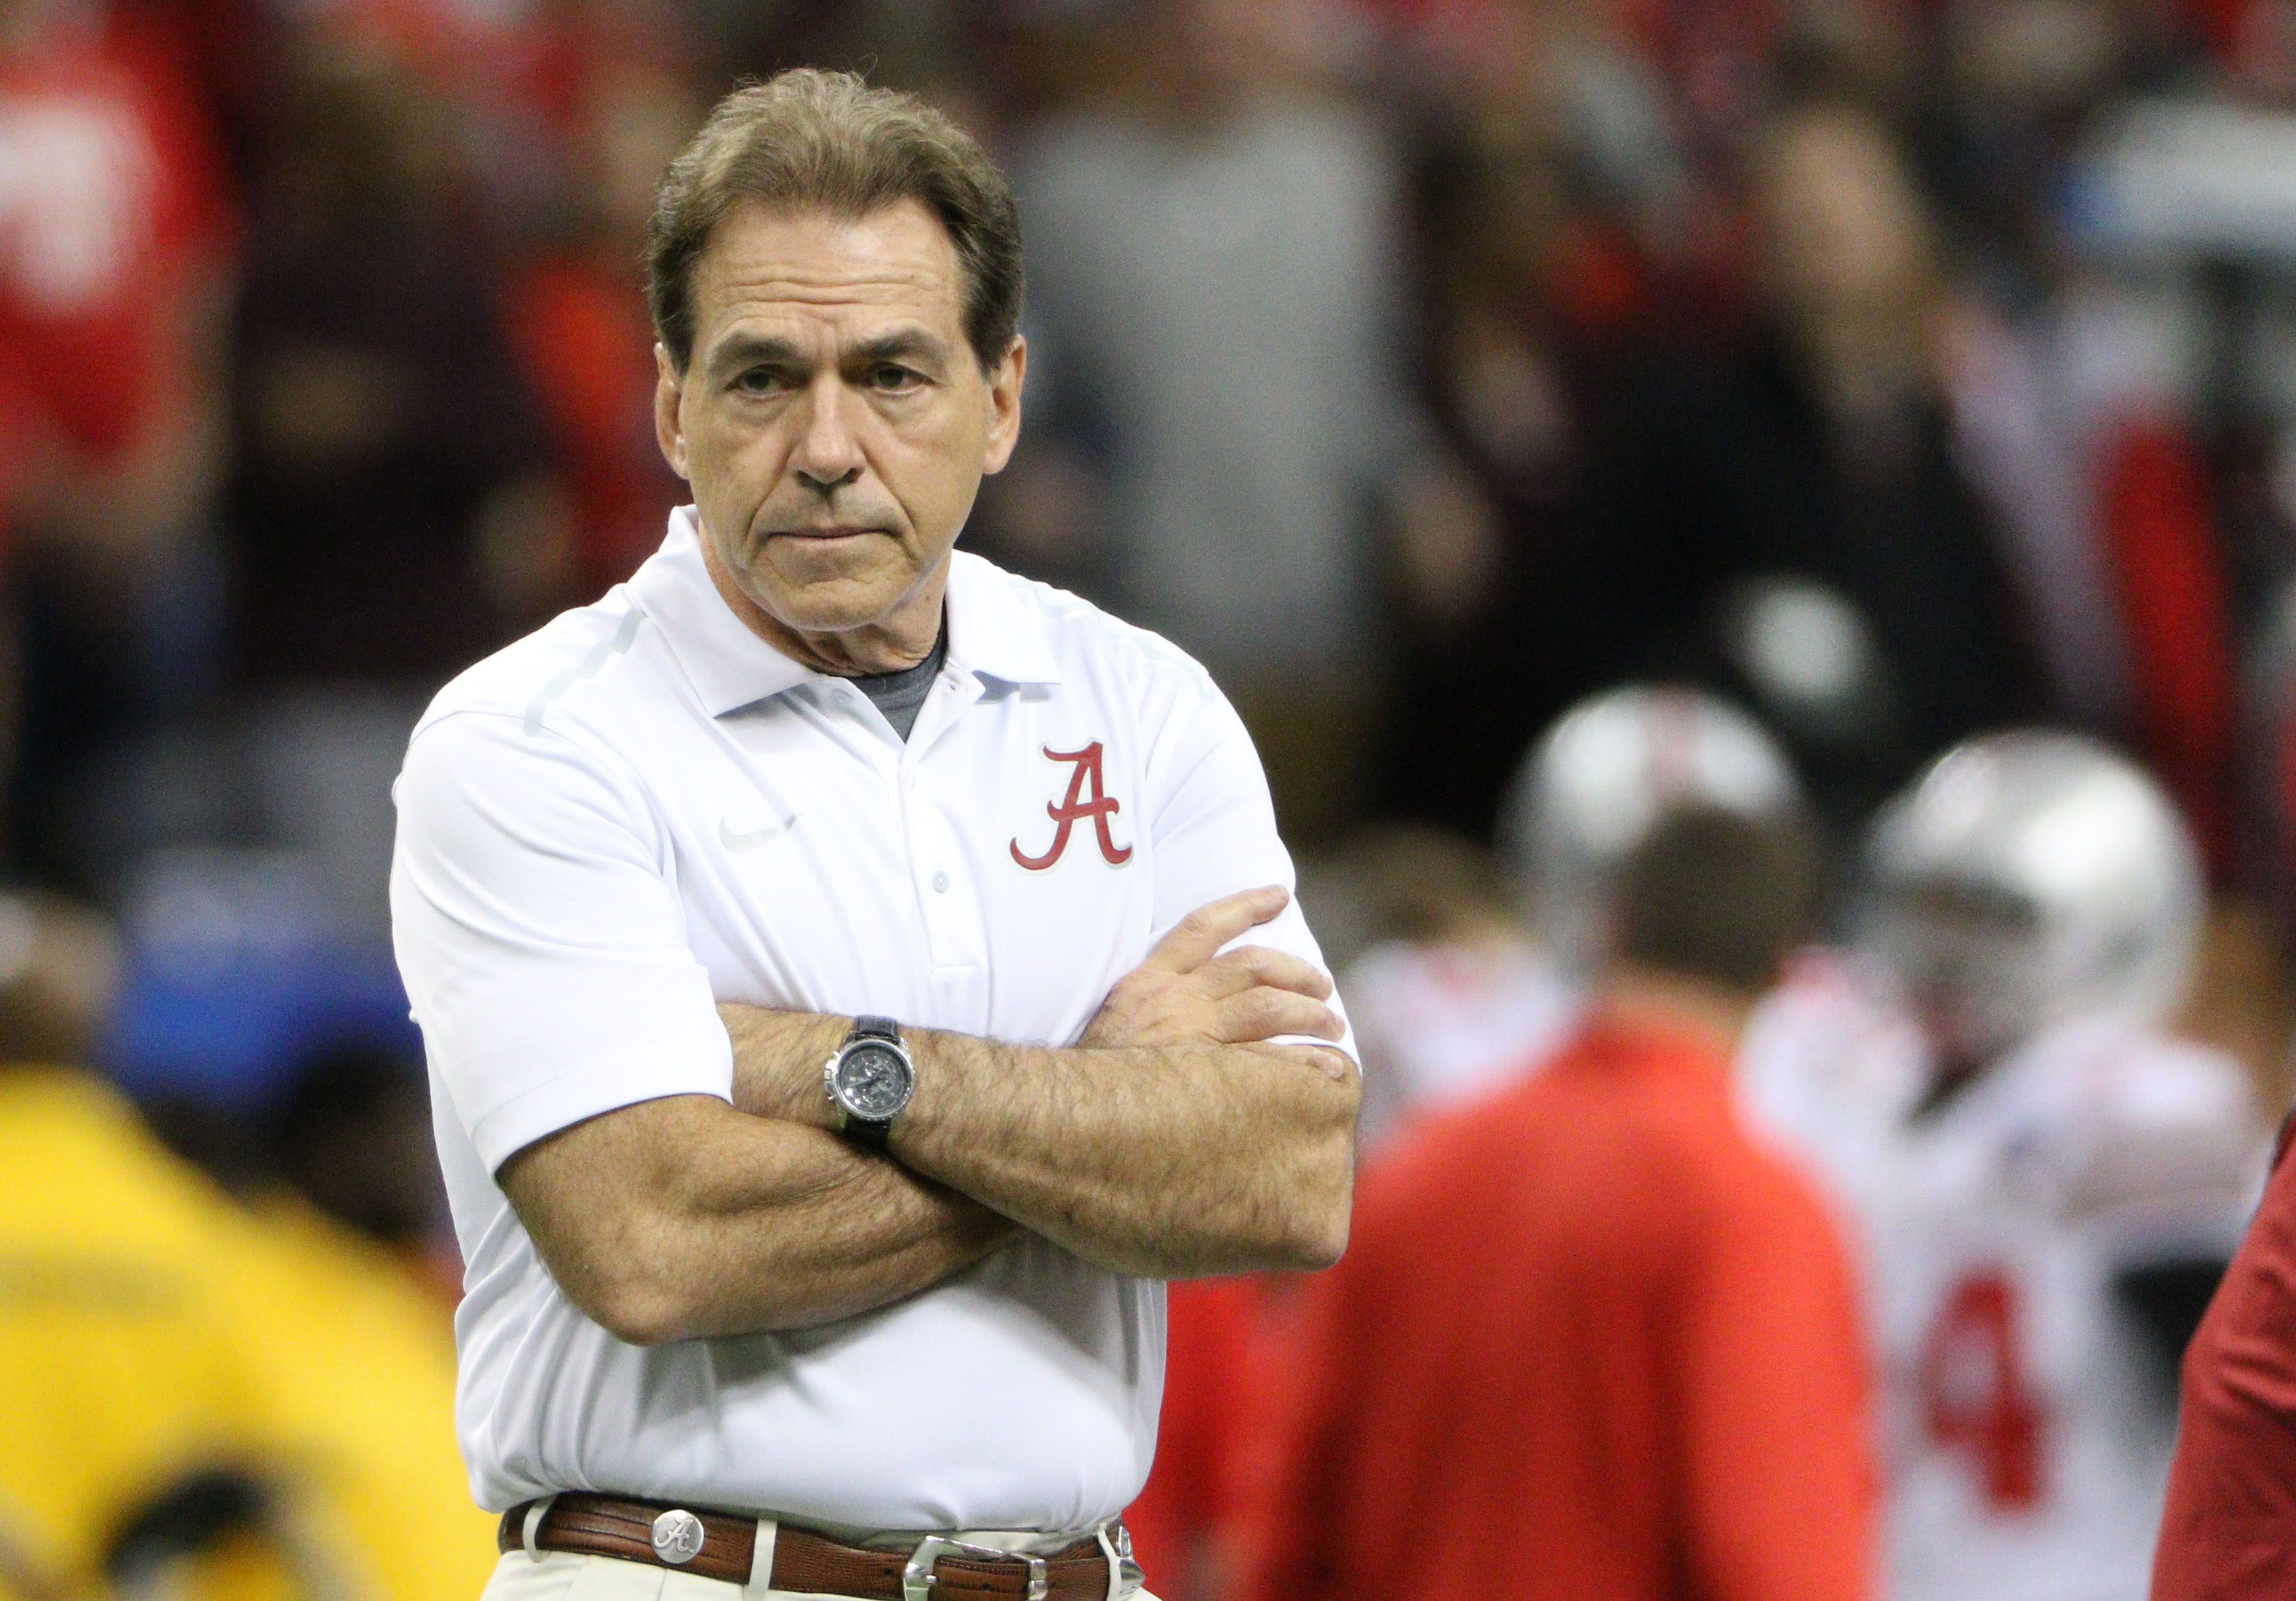 writing his own history why nick saban is retiring at alabama